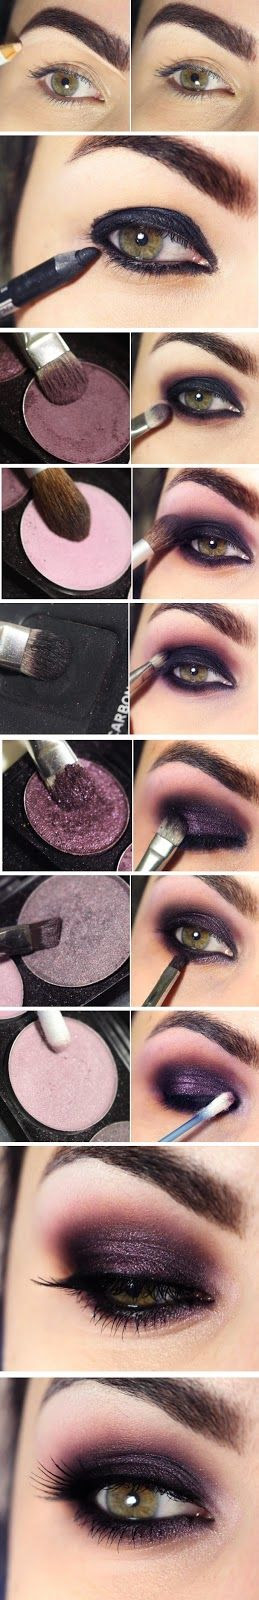 How To Do Smokey Eye Makeup?- Top 10 Tutorial Pictures For